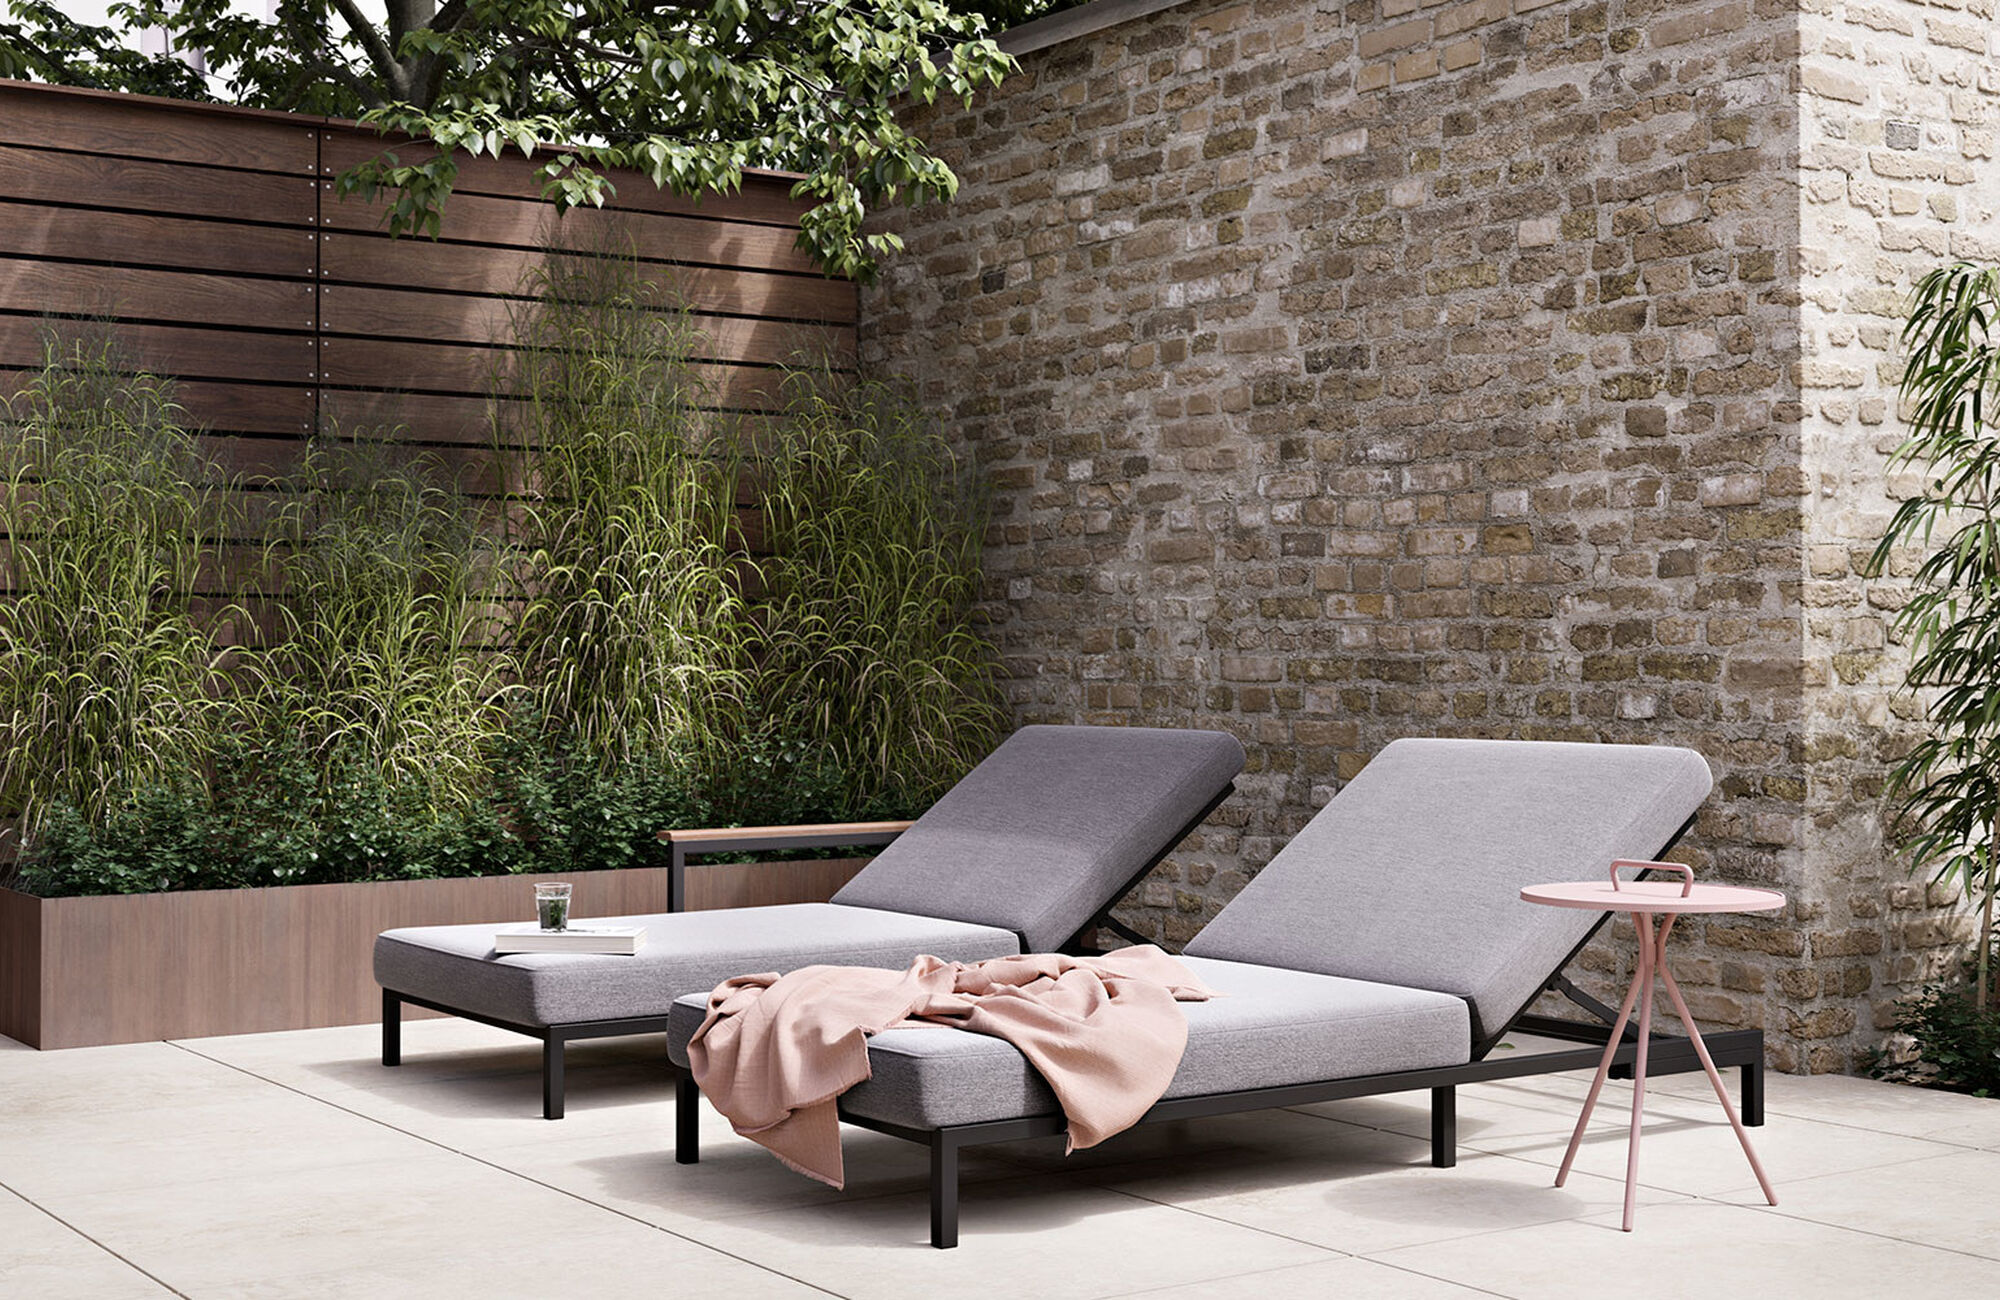 Outdoor lounge furniture - Rome sunbed without armrest